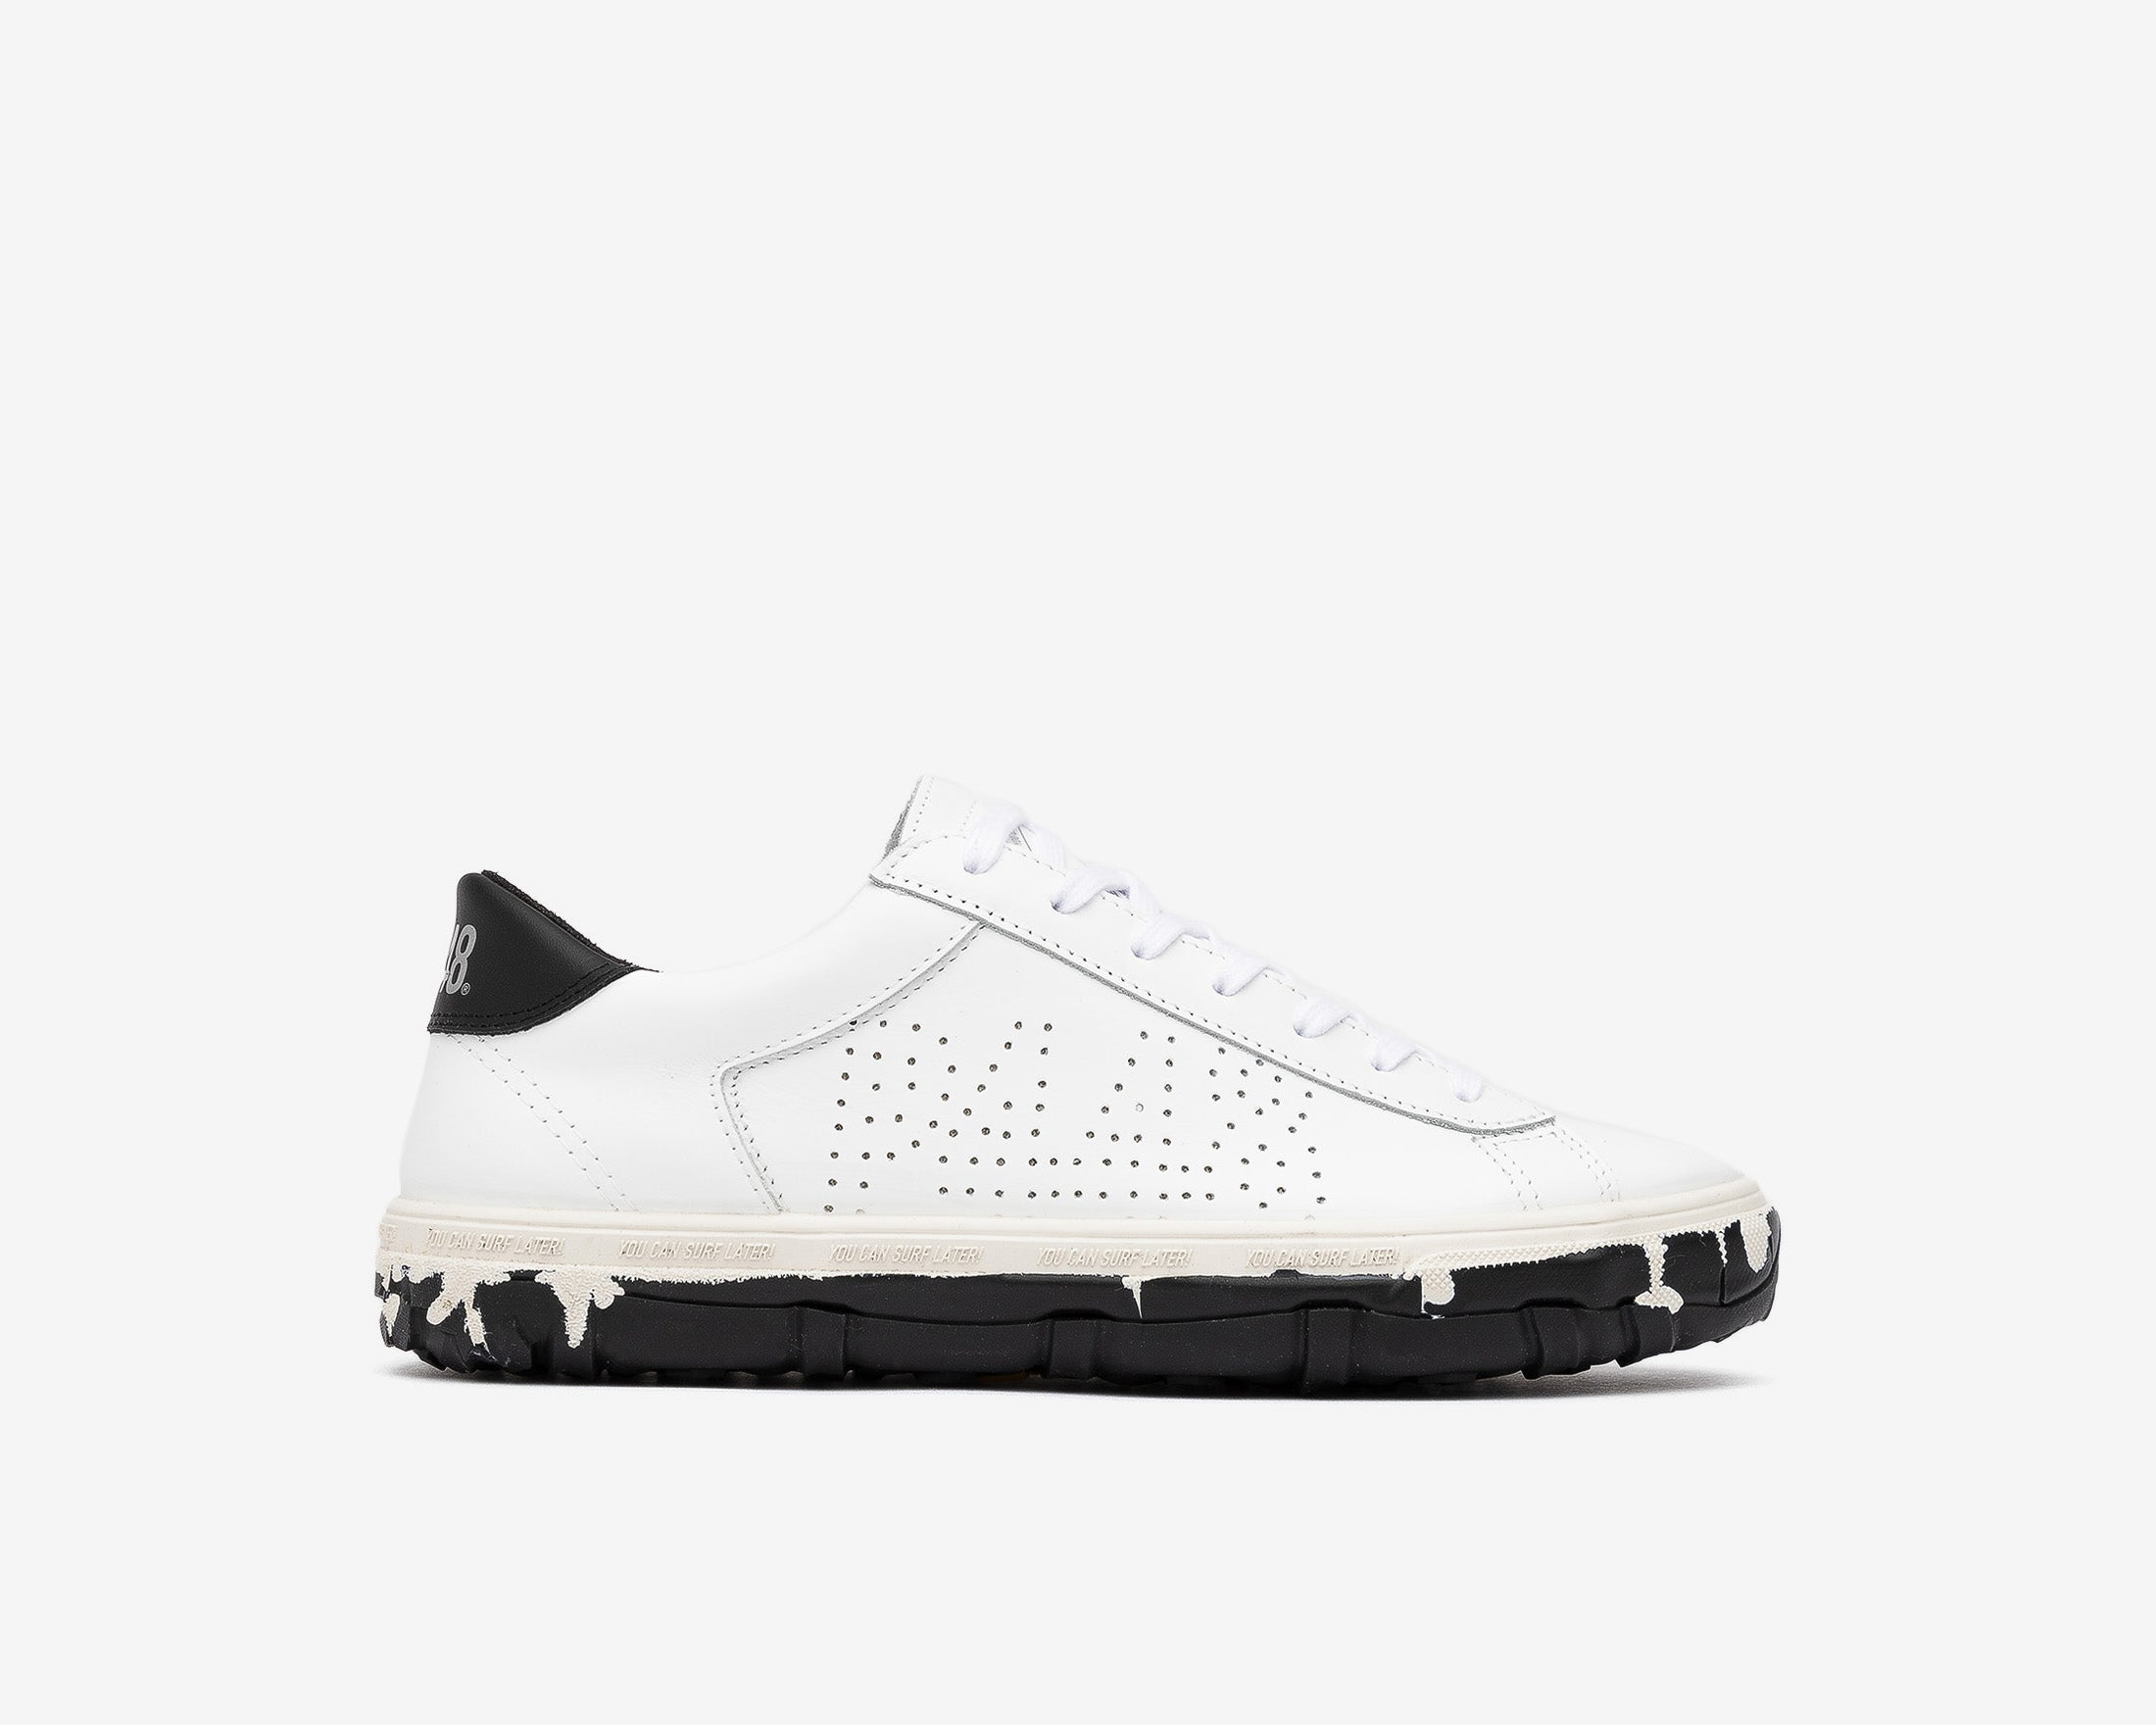 Y.C.S.L. Vibram Low-Top Sneaker in White/Black - Profile